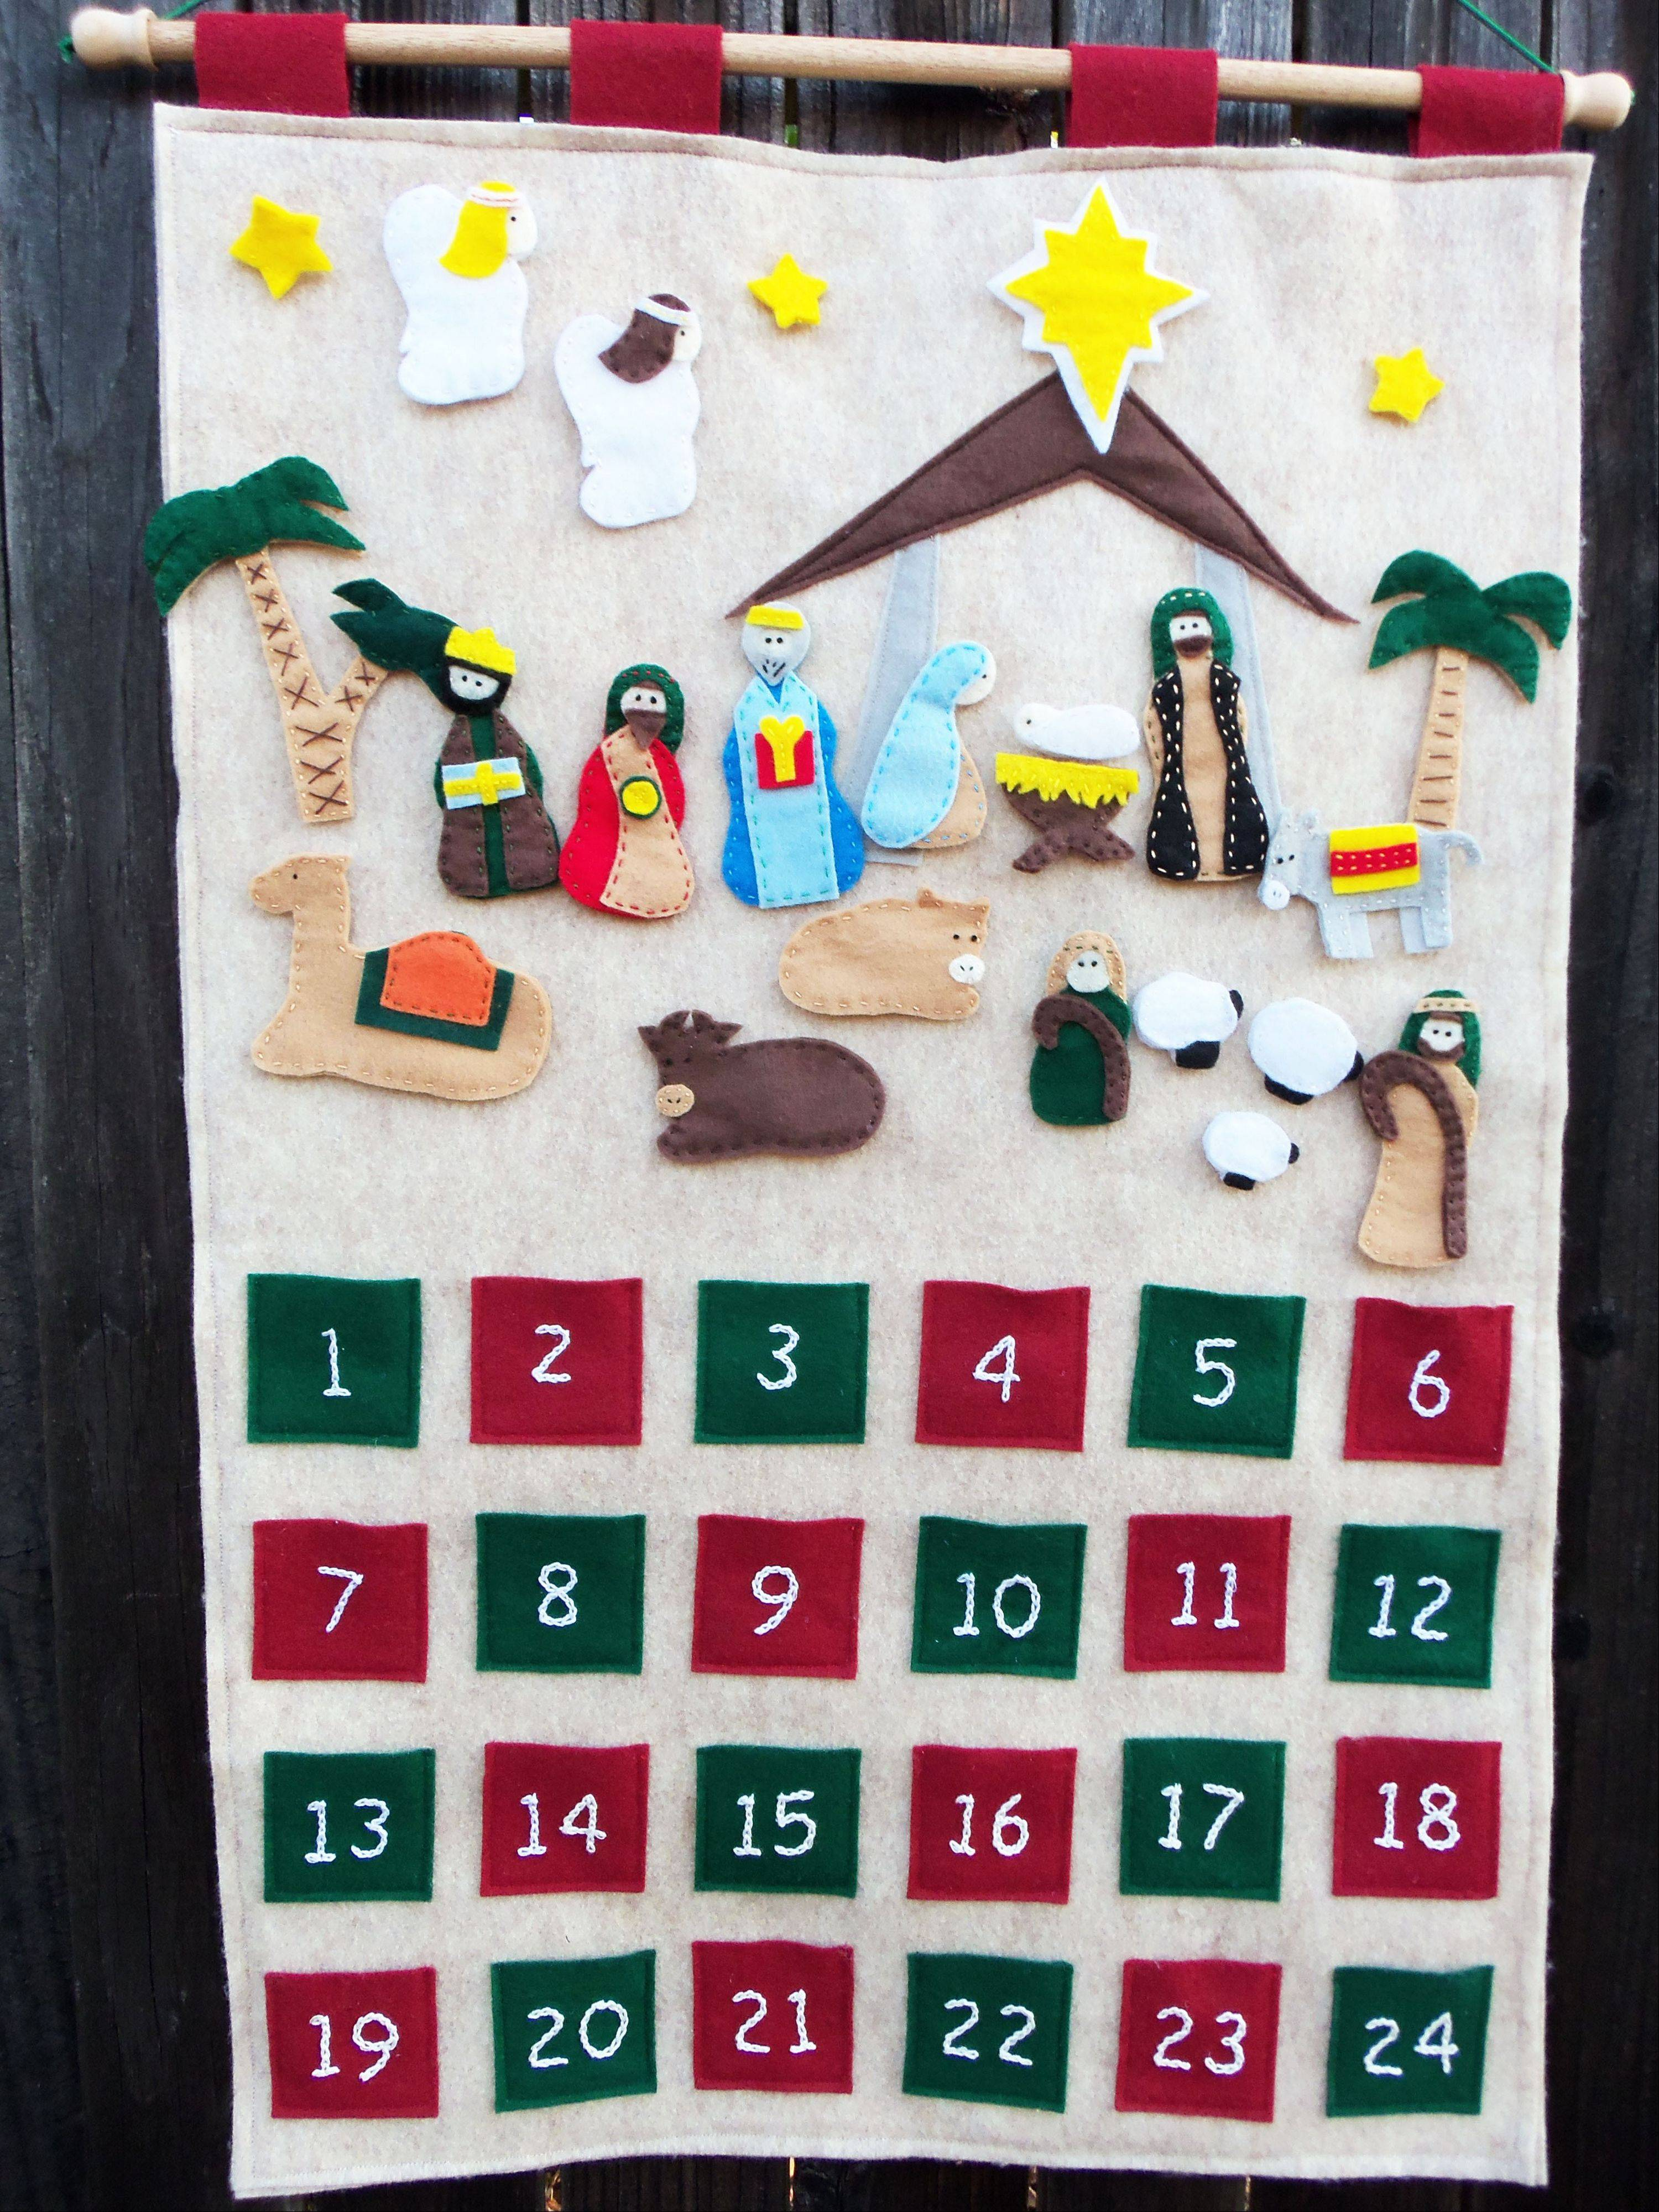 "Jessica Anderson, of Rancho Cordova, Calif., feels that advent calendars promote family bonding. ""I feel with the advent calendar, it's something they will remember when they grow up,"" says Anderson, who blogs at Cutesy Crafts."